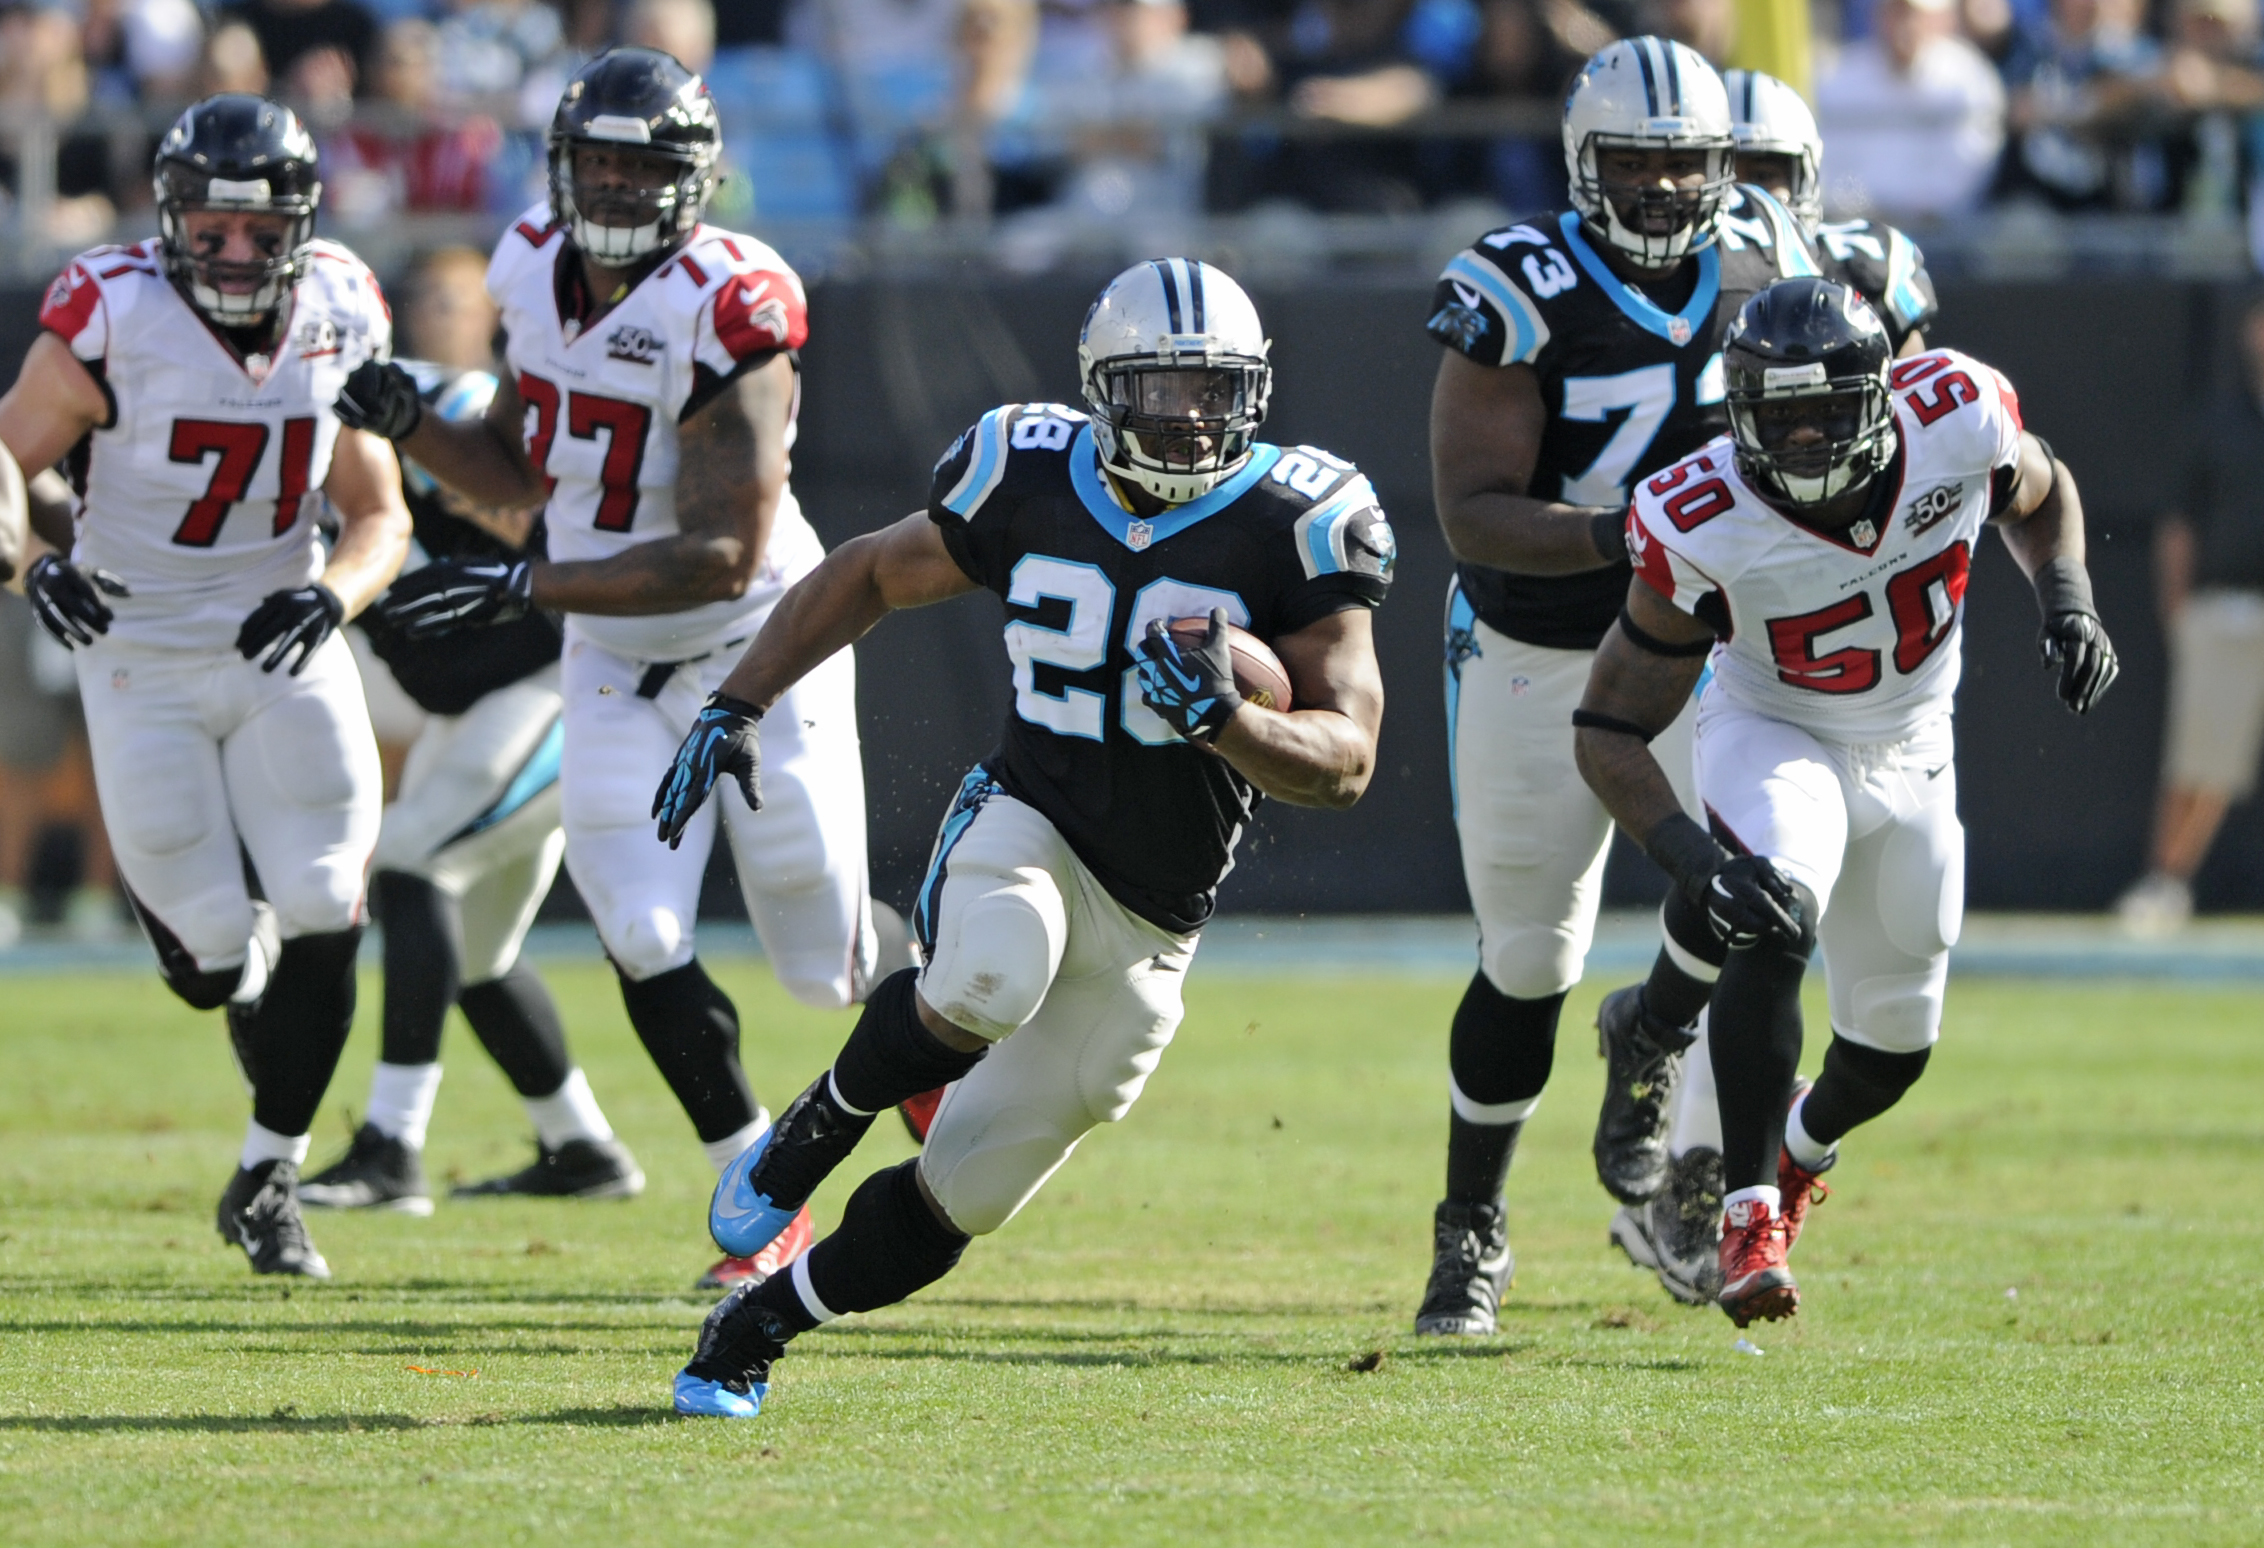 Carolina Panthers' Jonathan Stewart (28) runs past Atlanta Falcons players in the first half of an NFL football game in Charlotte, N.C., Sunday, Dec. 13, 2015. (AP Photo/Mike McCarn)